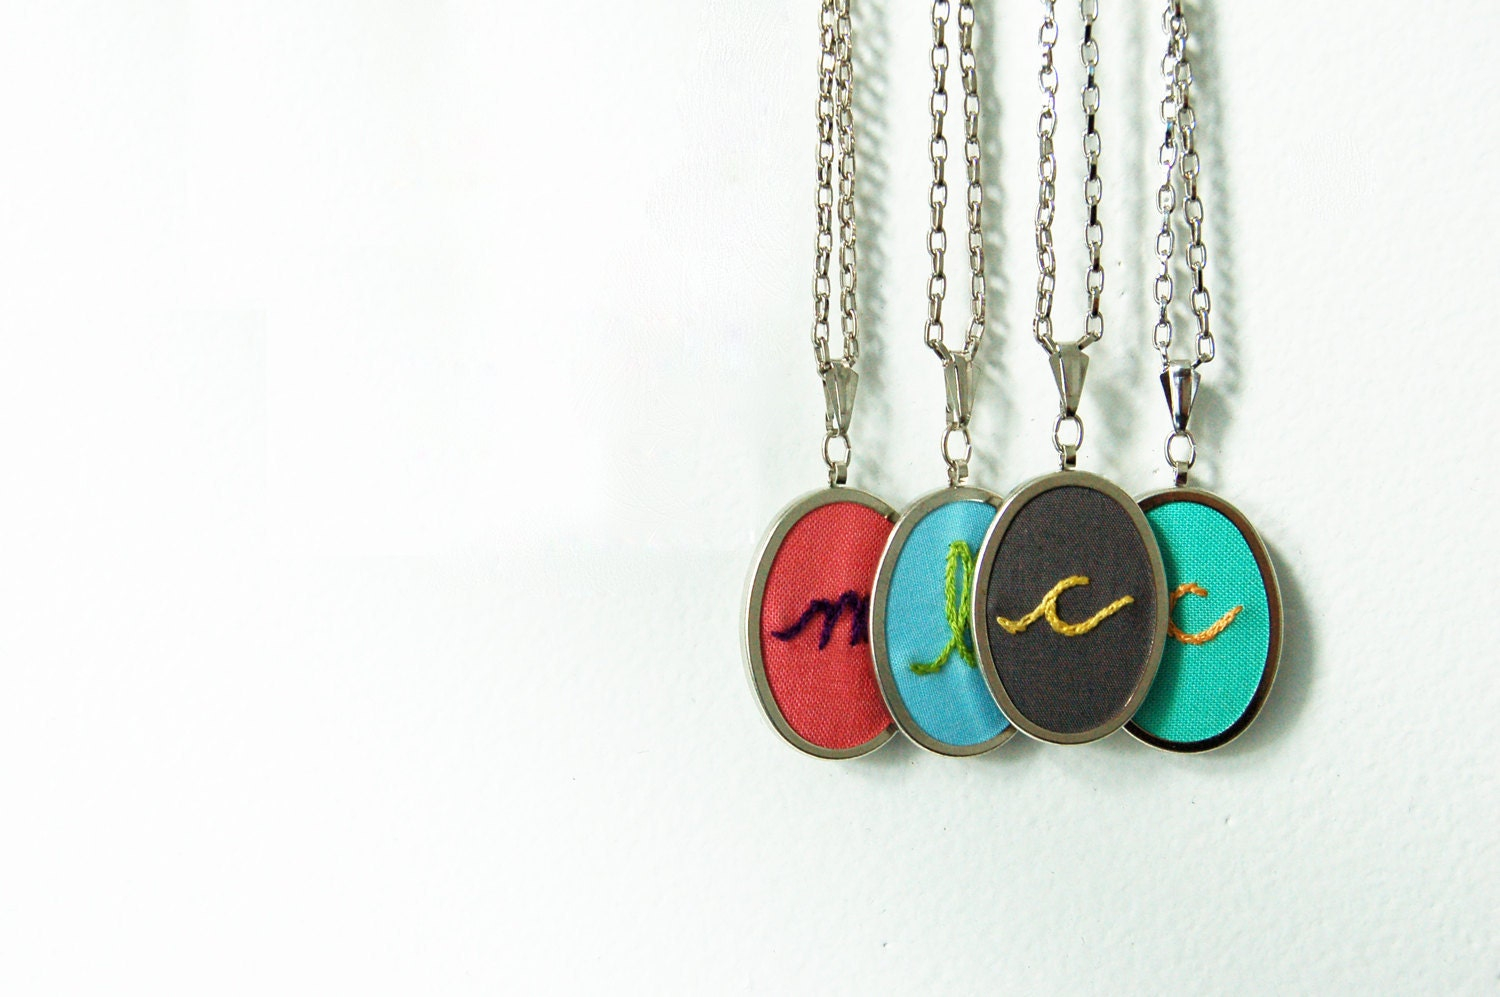 Embroidered Initial Necklace. Custom Letter,  Personalized Necklace.  Made Just For You by merriweathercouncil on Etsy.